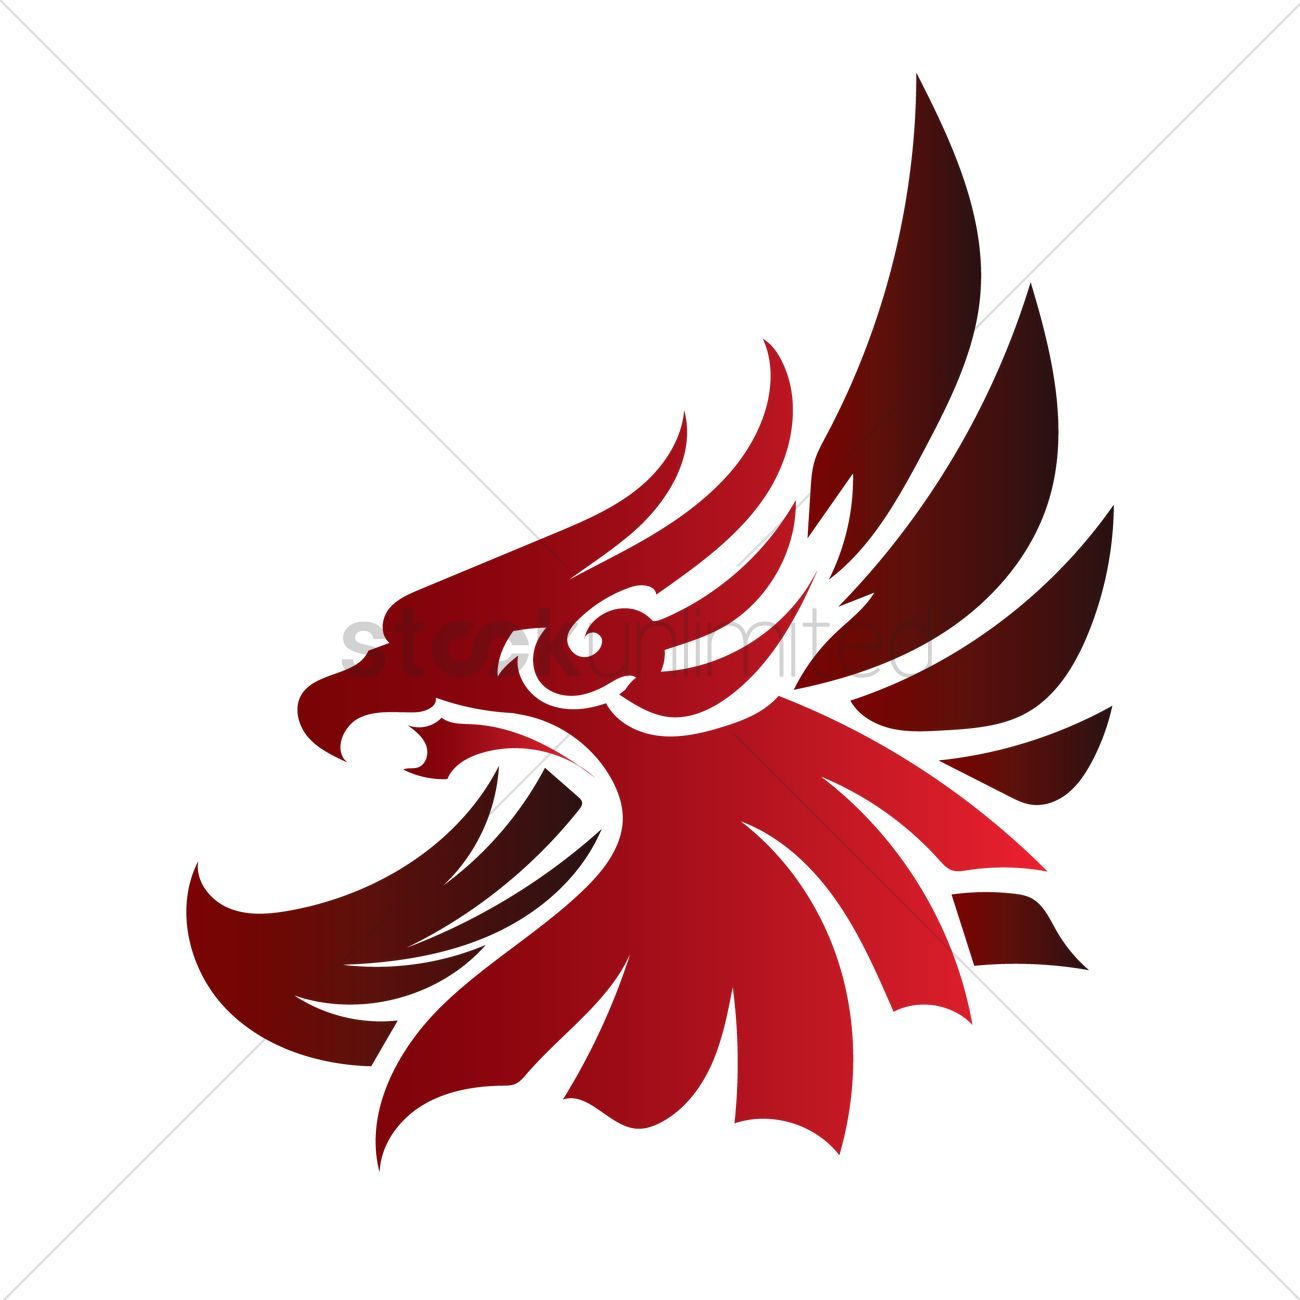 Abstract eagle icon vector image 1484942 stockunlimited abstract eagle icon vector graphic biocorpaavc Gallery